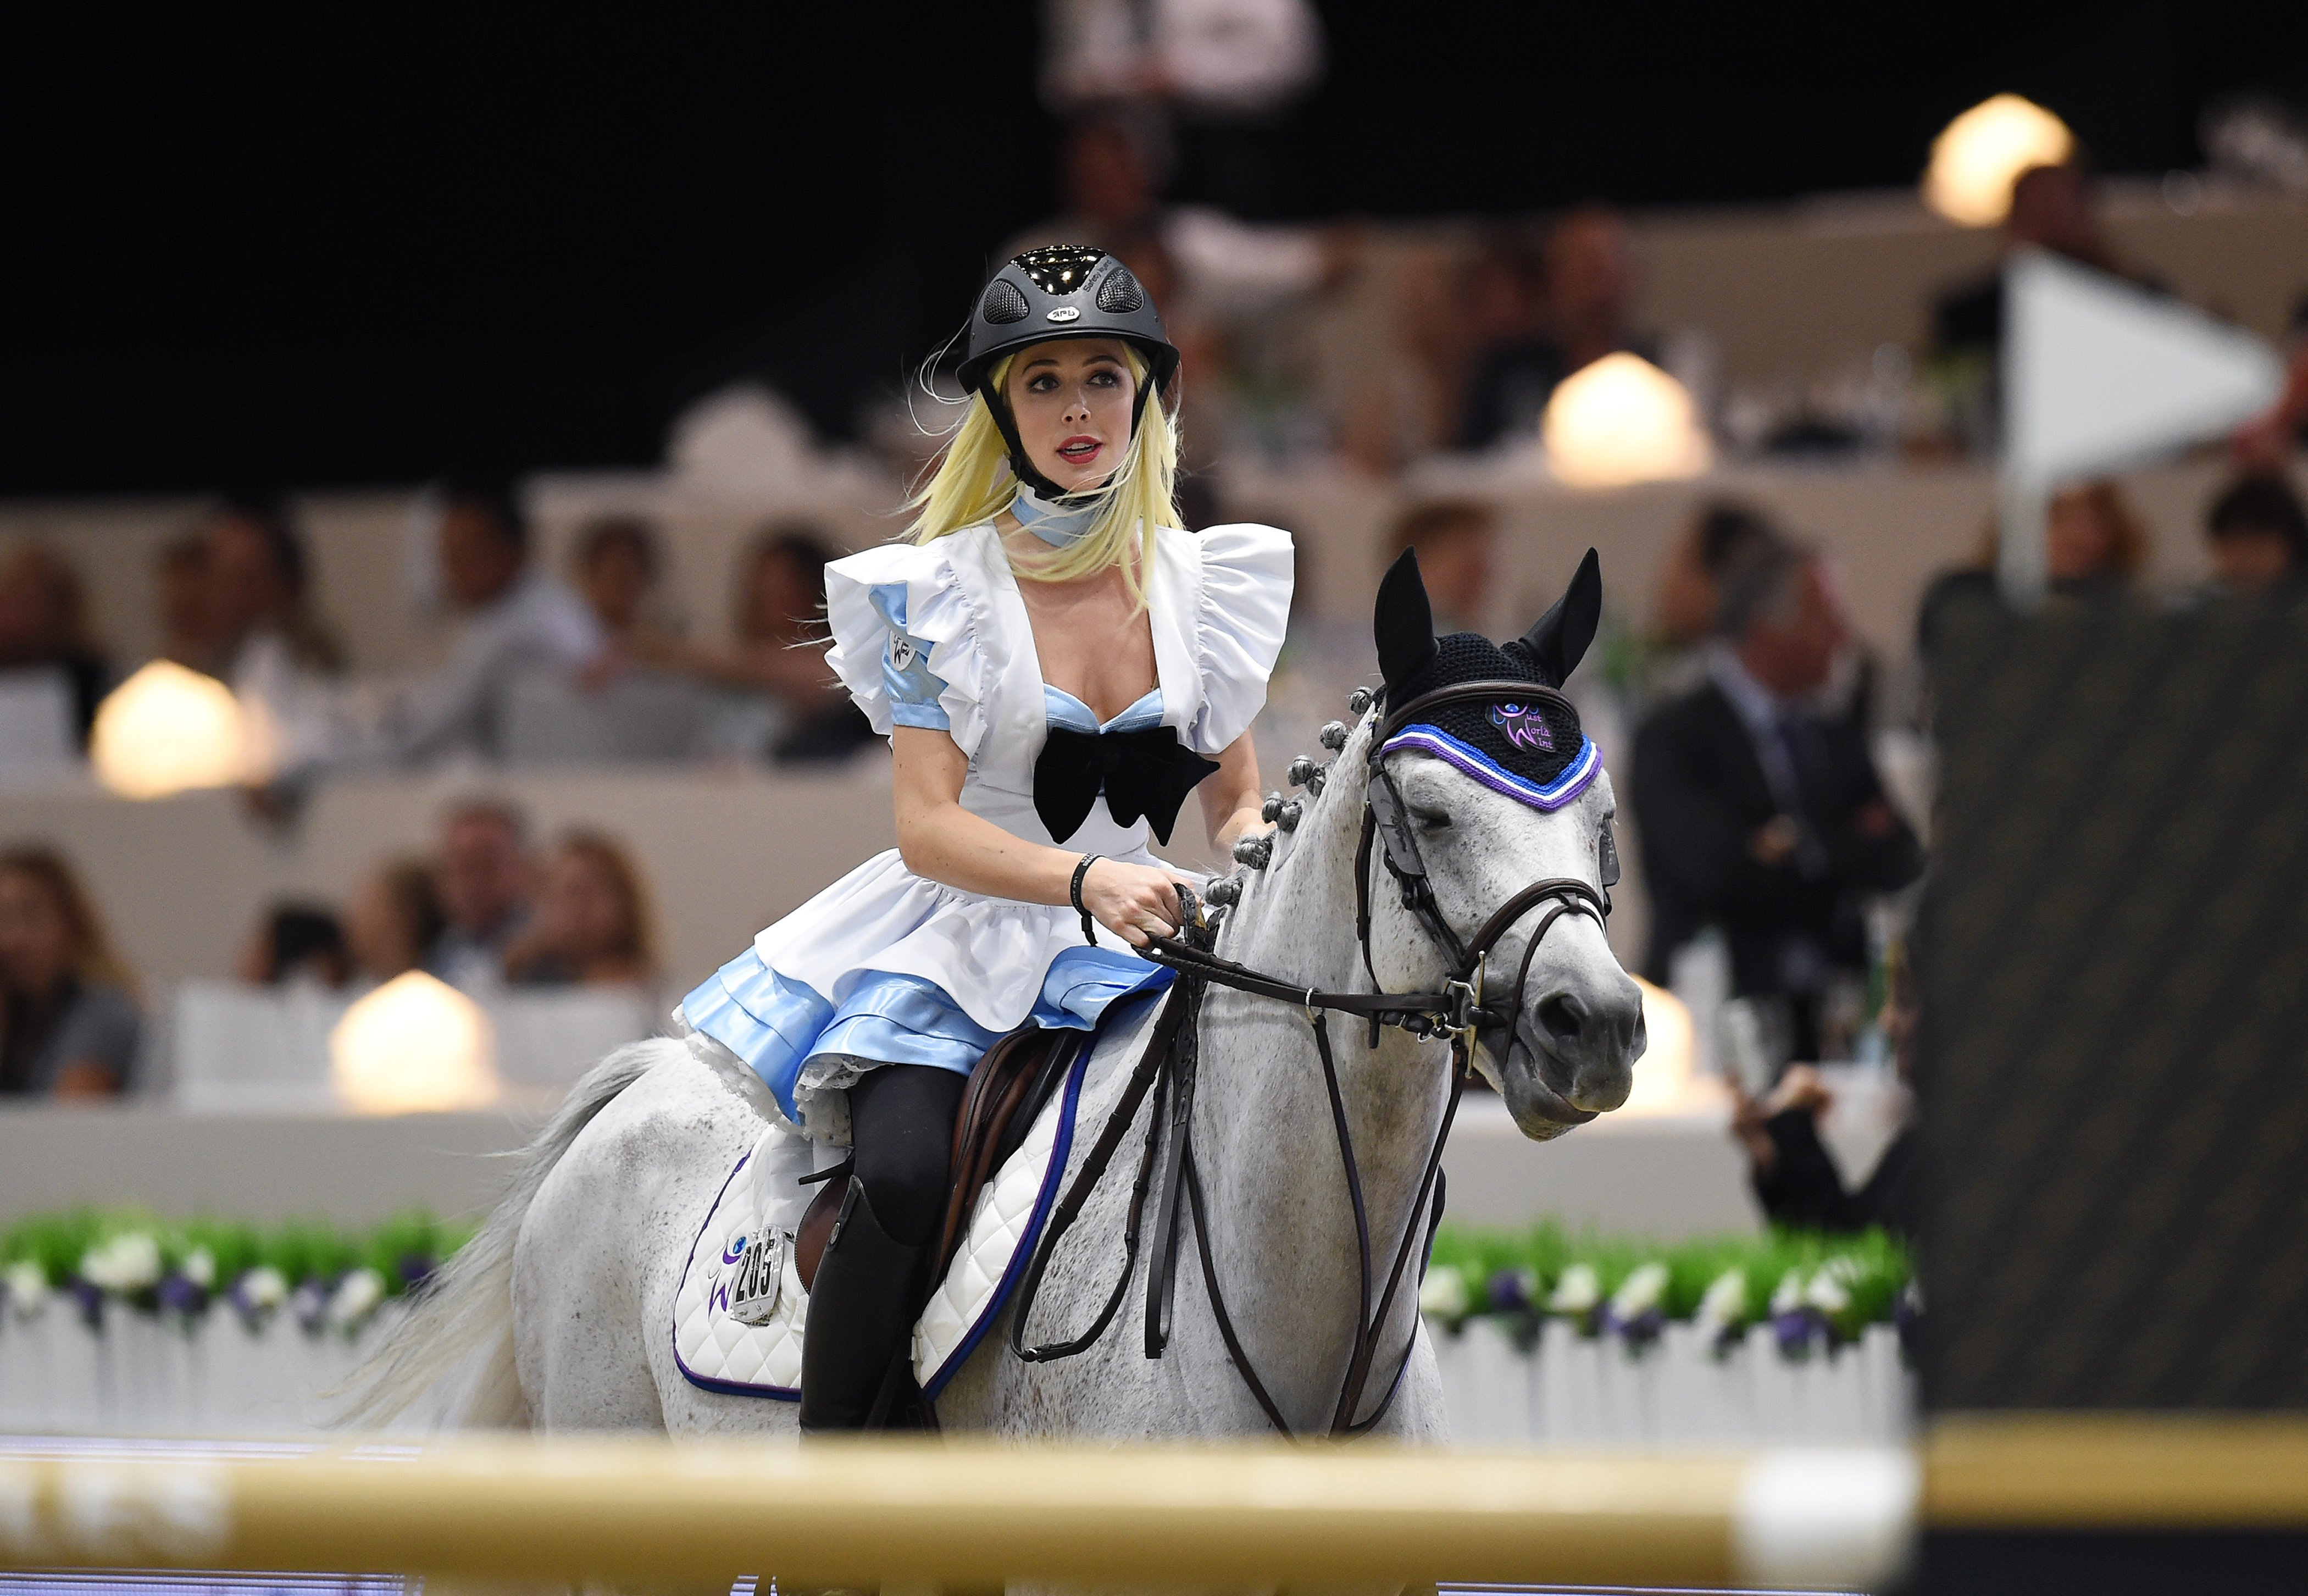 Hannah Selleck participates in the Longines Masters of Los Angeles in California on October 3, 2015 | Photo: Getty Images